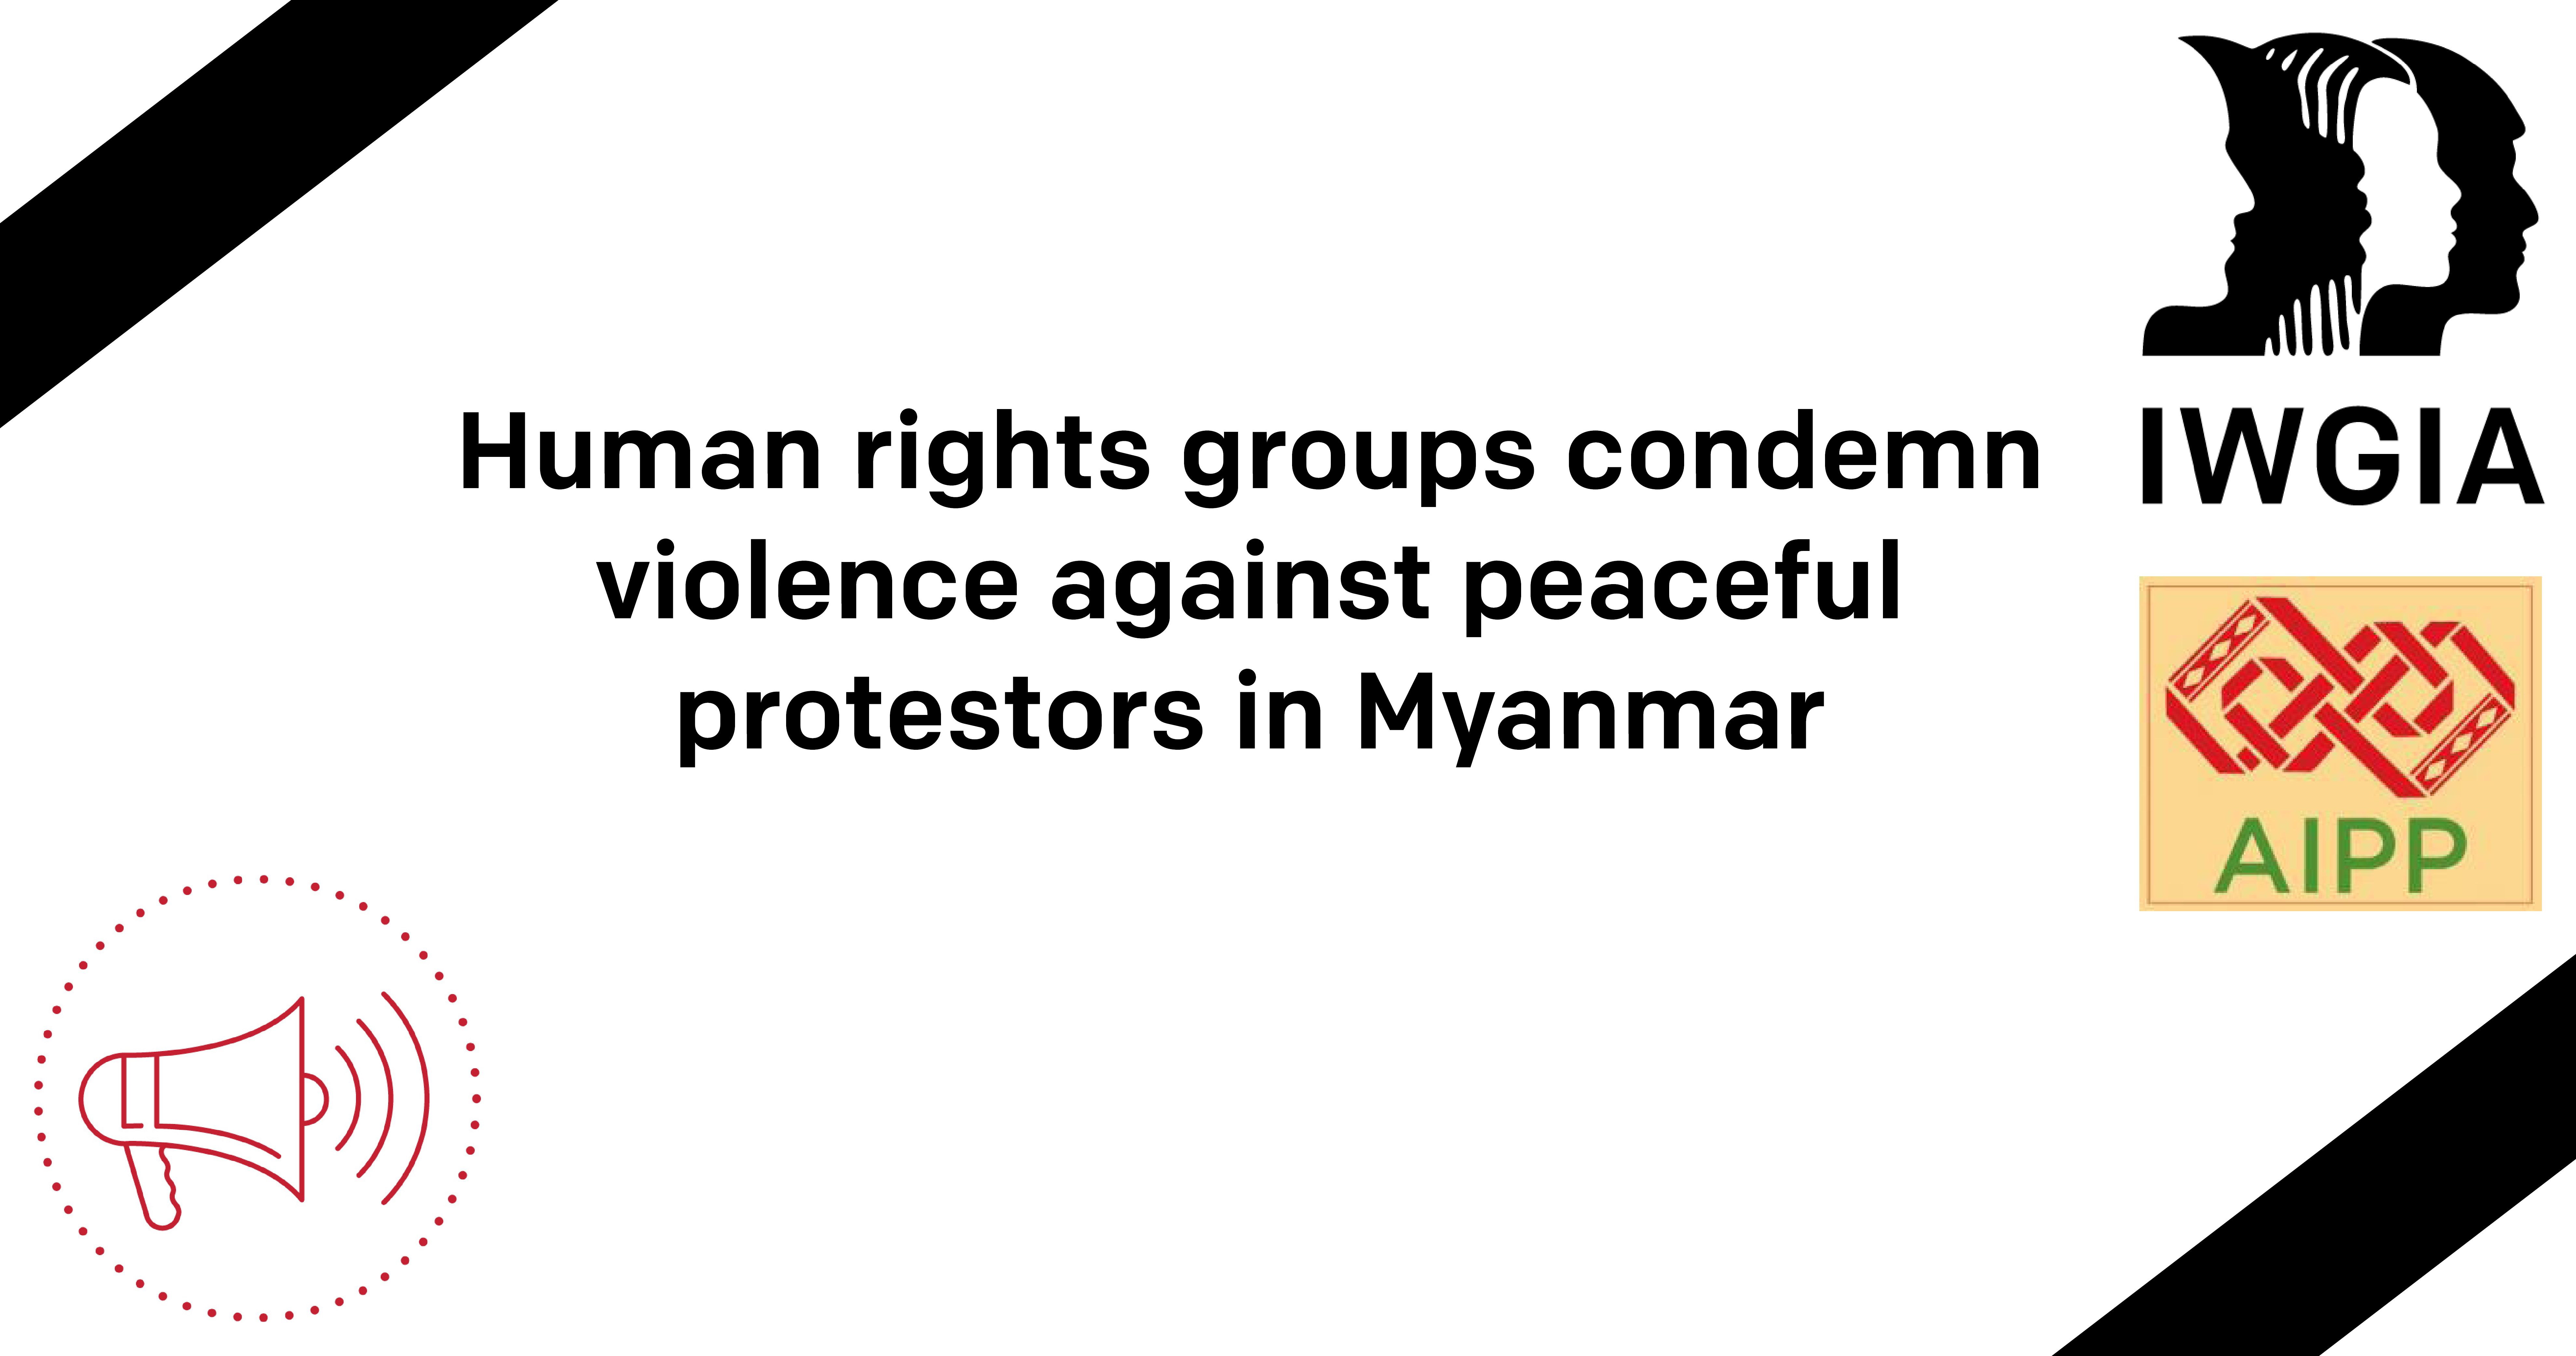 Human rights groups condemn violence against peaceful protestors in Myanmar